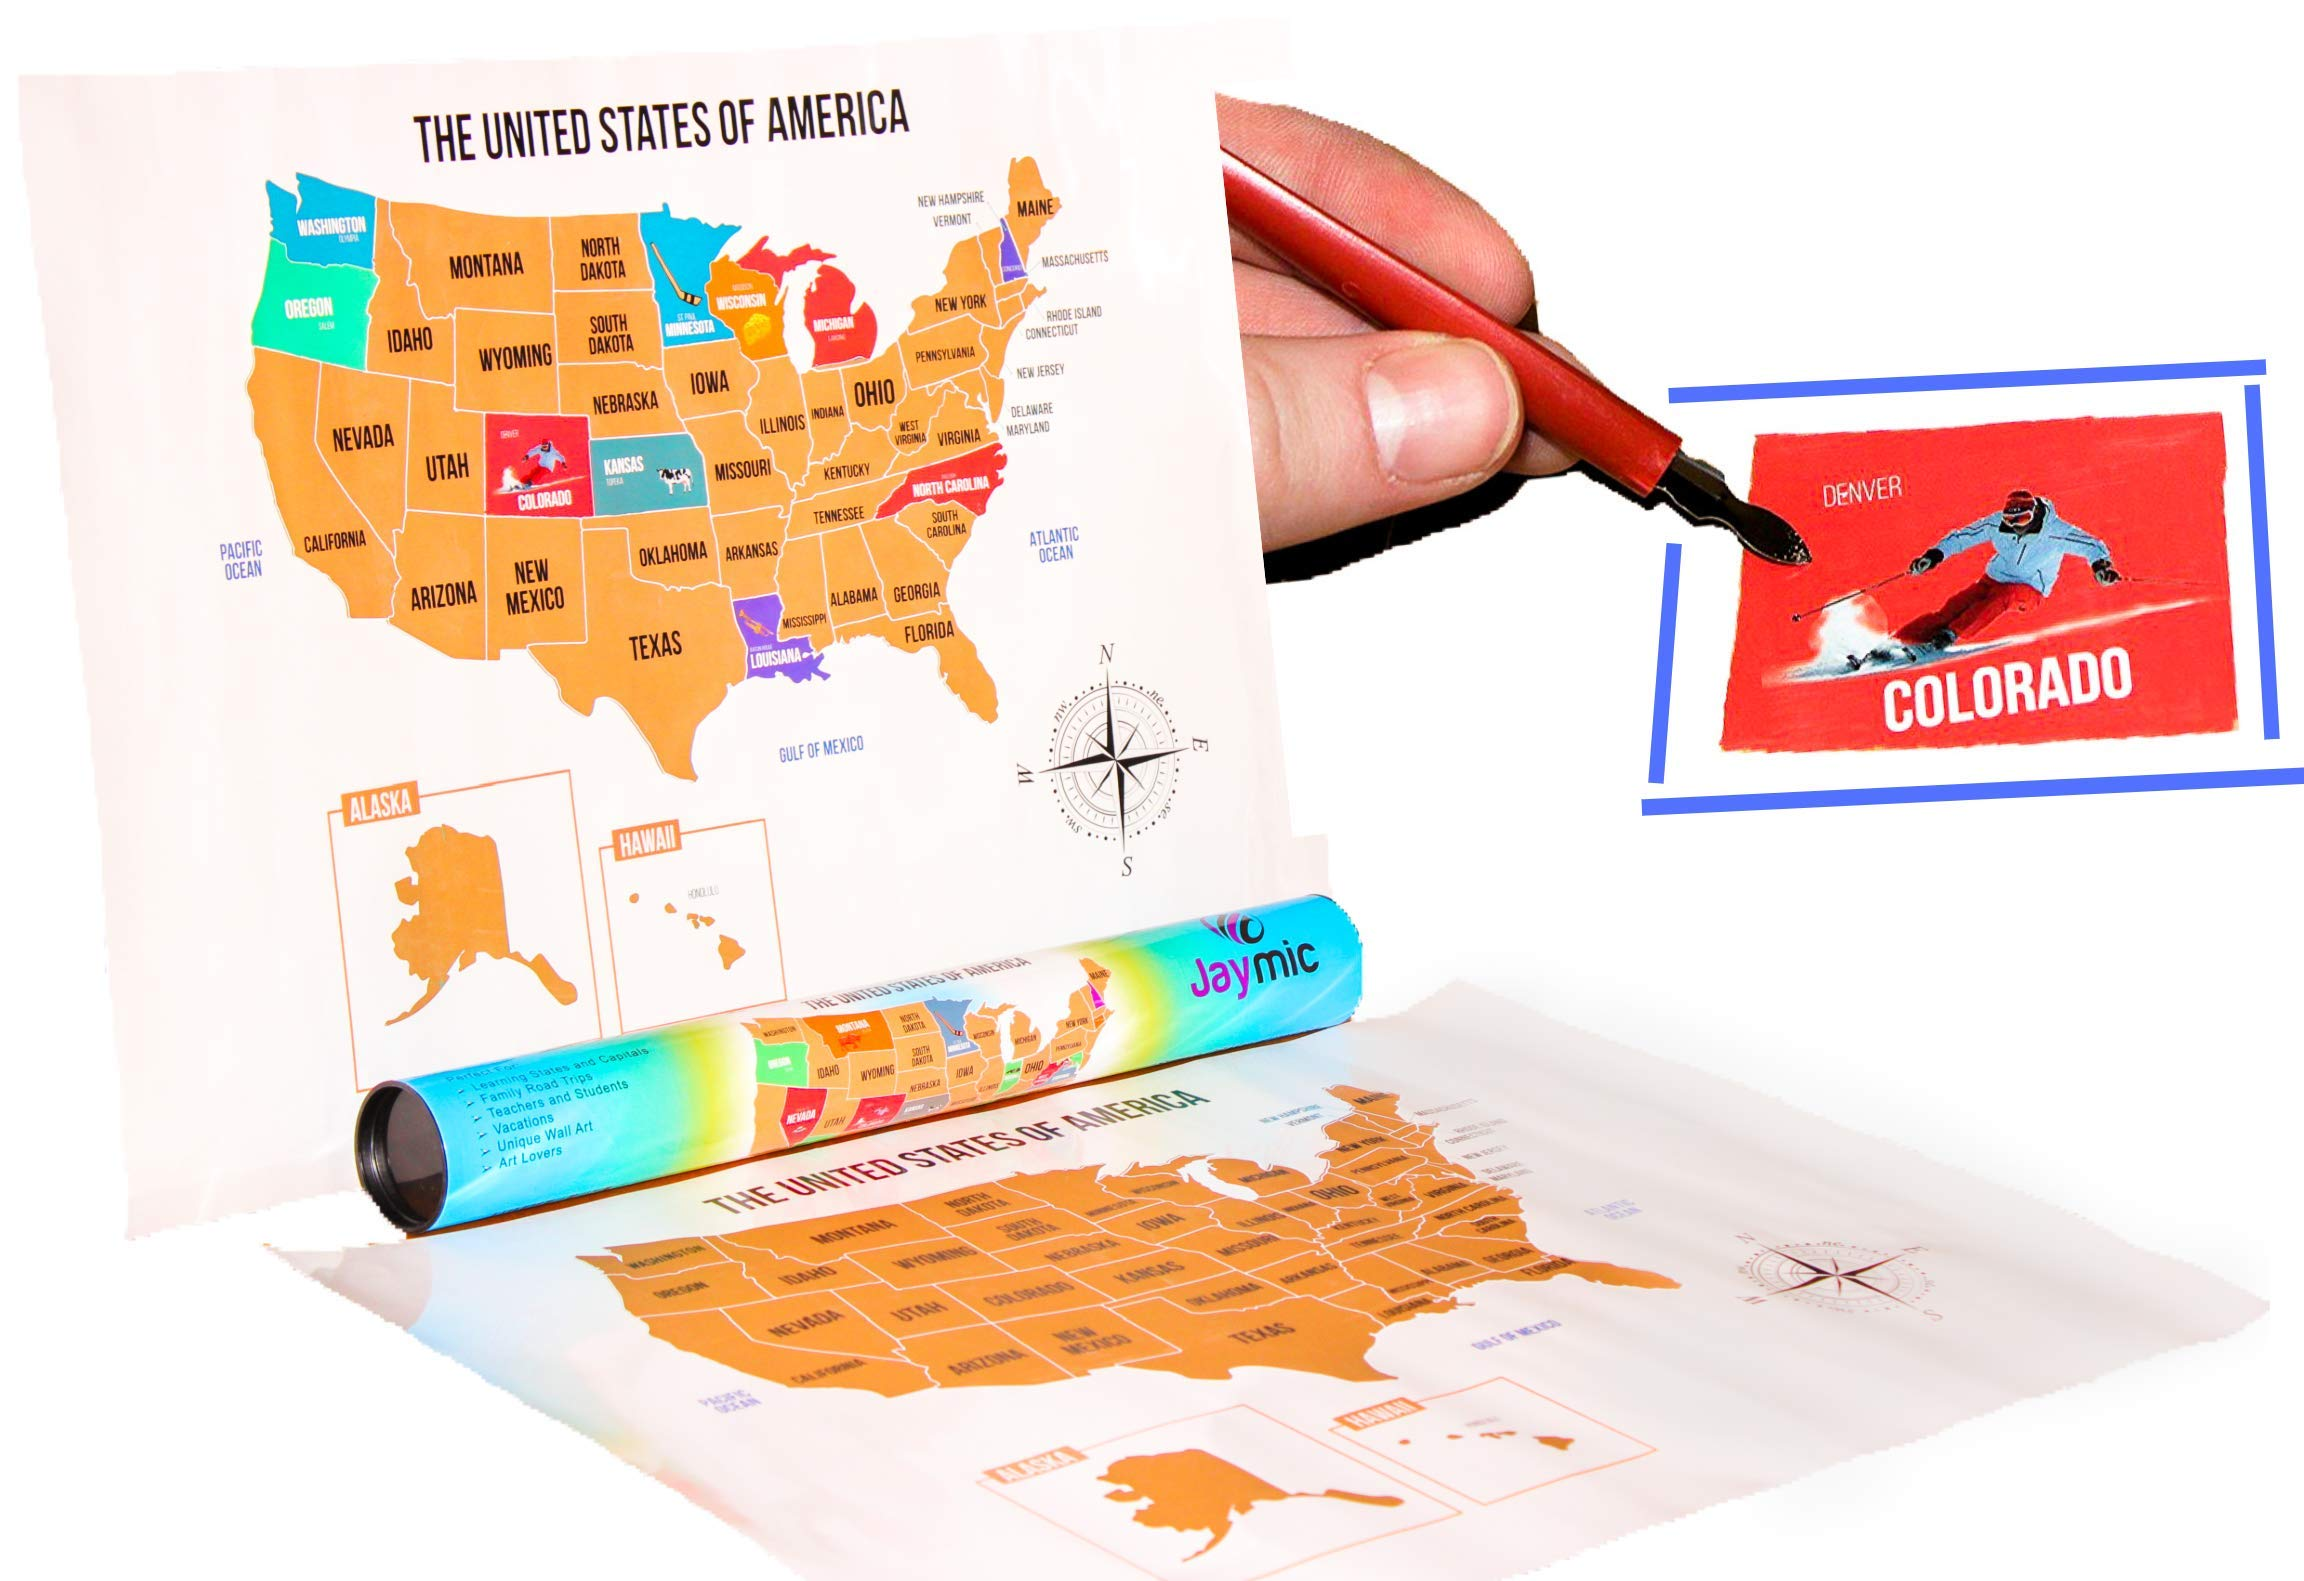 Jaymic Scratch Off Travel Map of USA | Track Your Travels | Learn States and Capitals Perfect for Kids | United States of America with Capital Cities (17''x24'') | Premium Quality with Scratching Tool by Jaymic